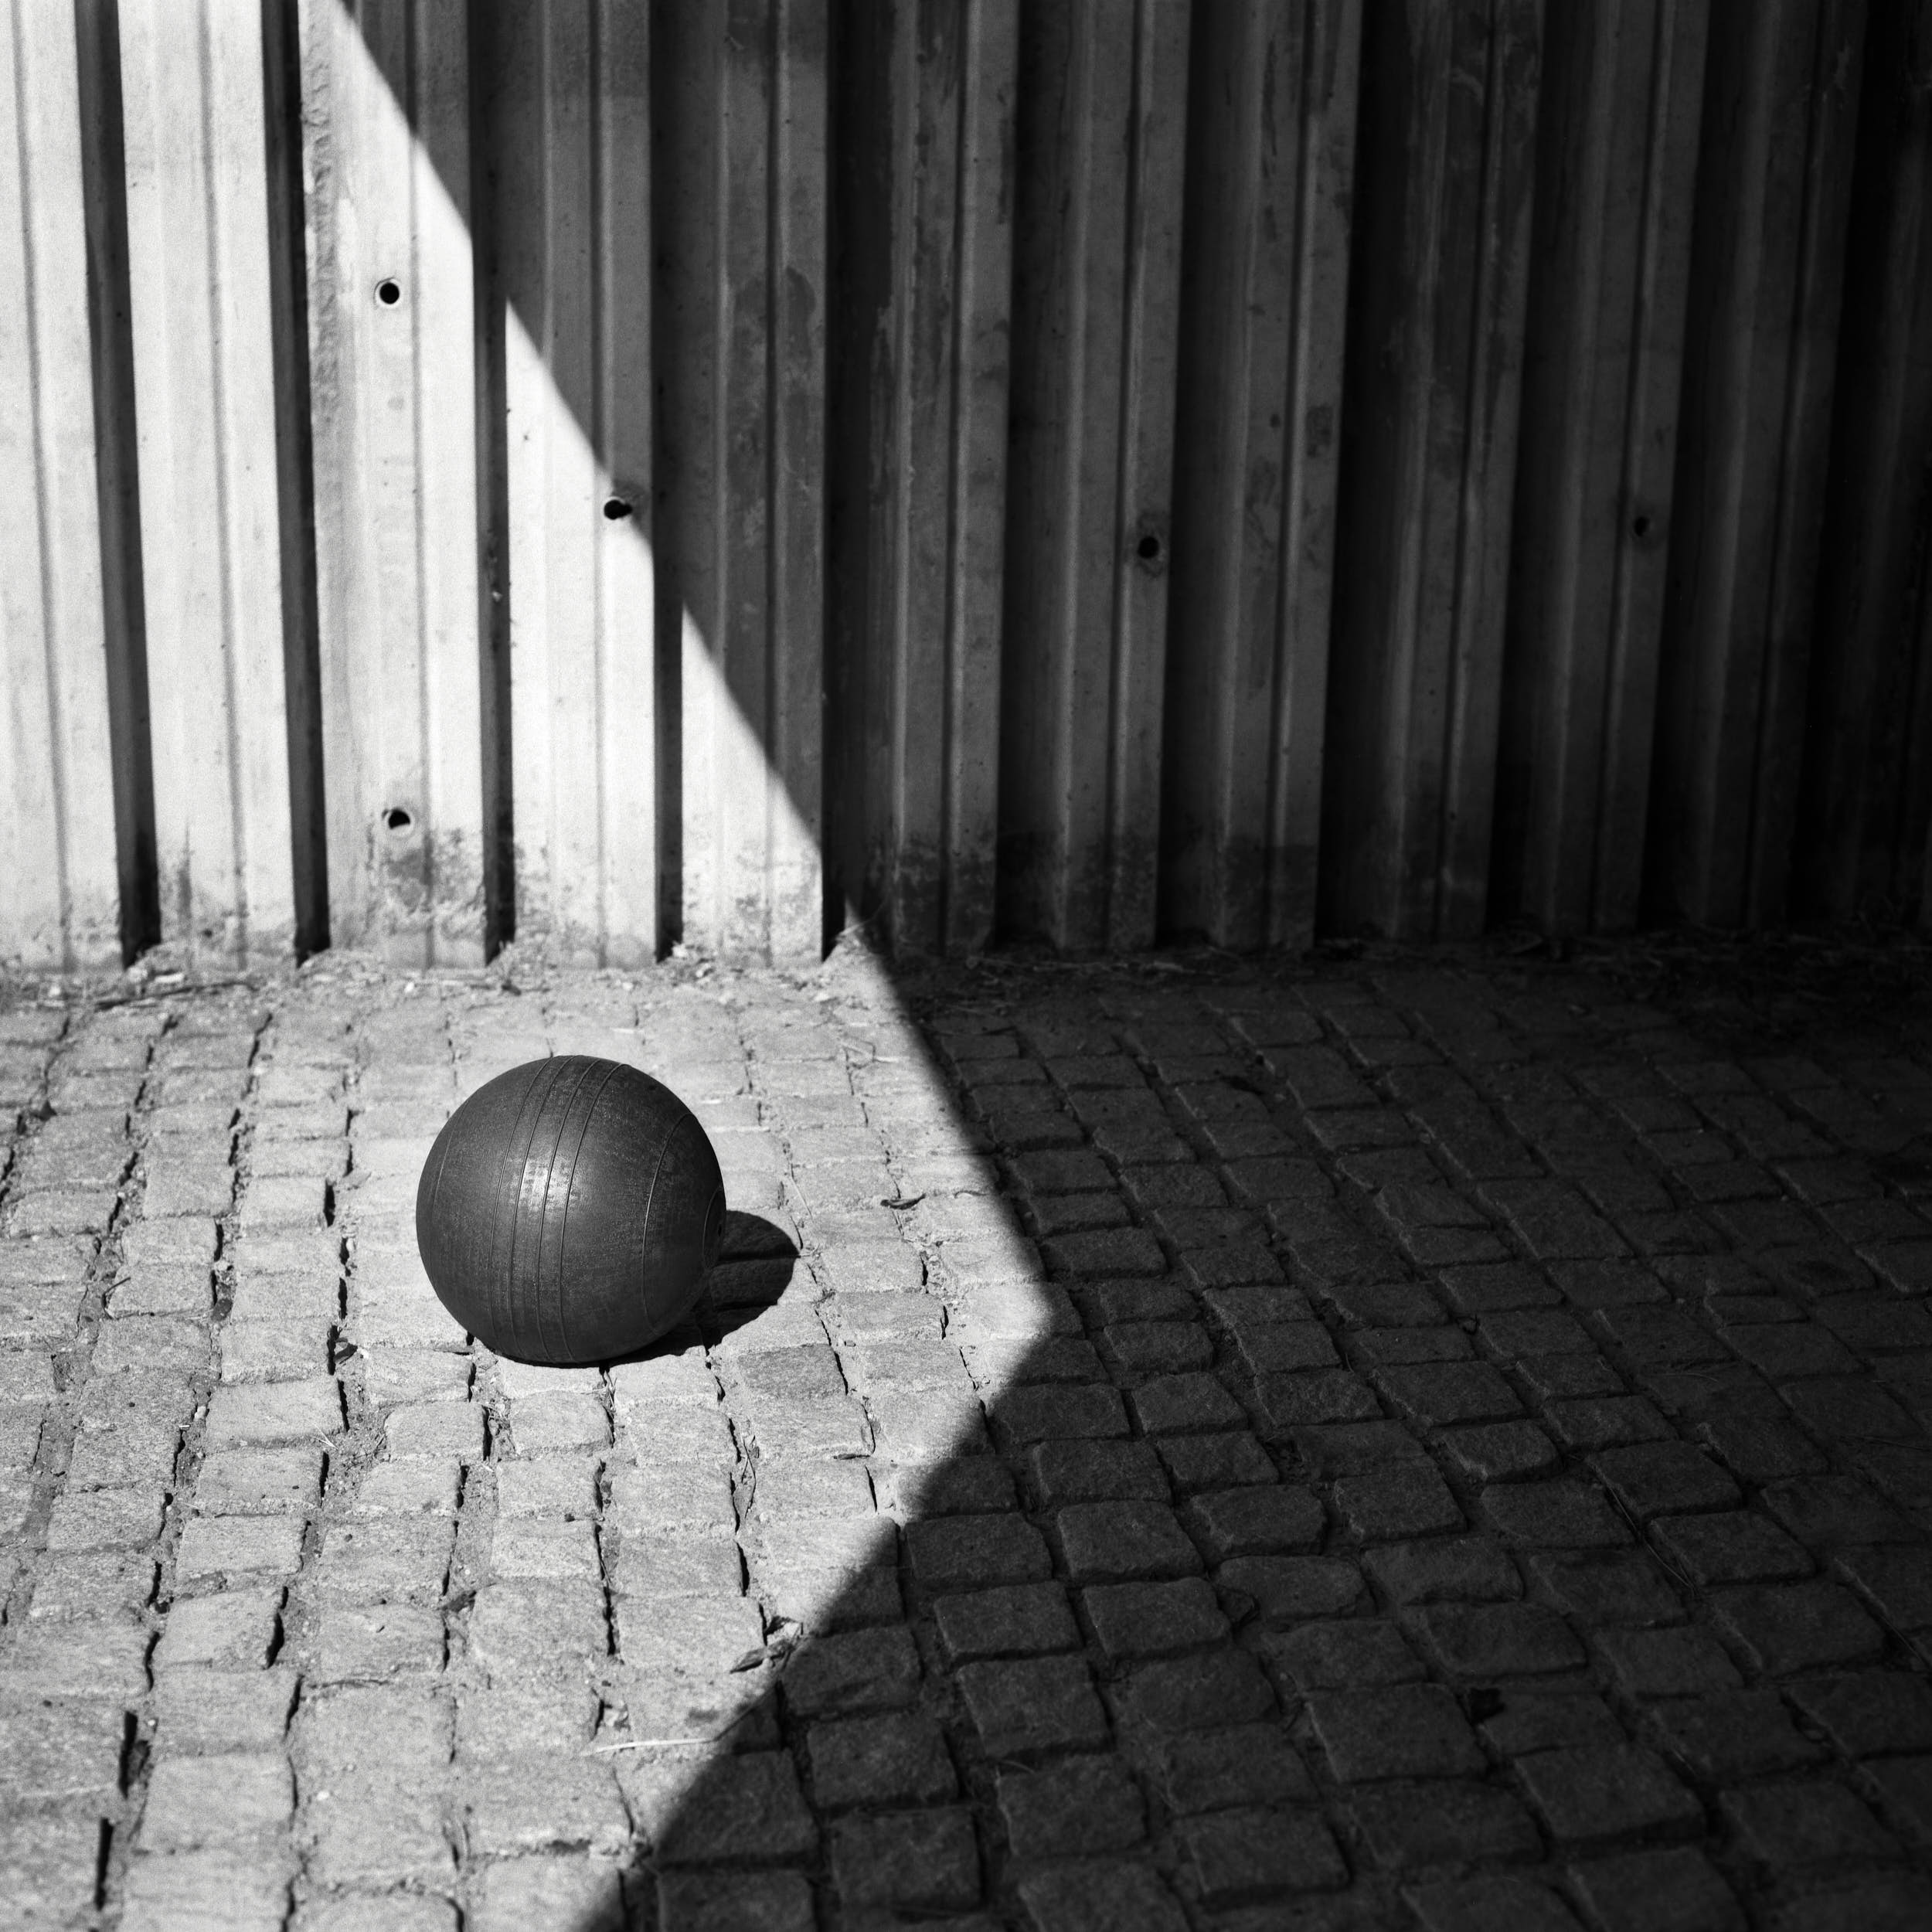 Sports still life photography: medicine ball in a geometric composition with deep shadows and high contrast.